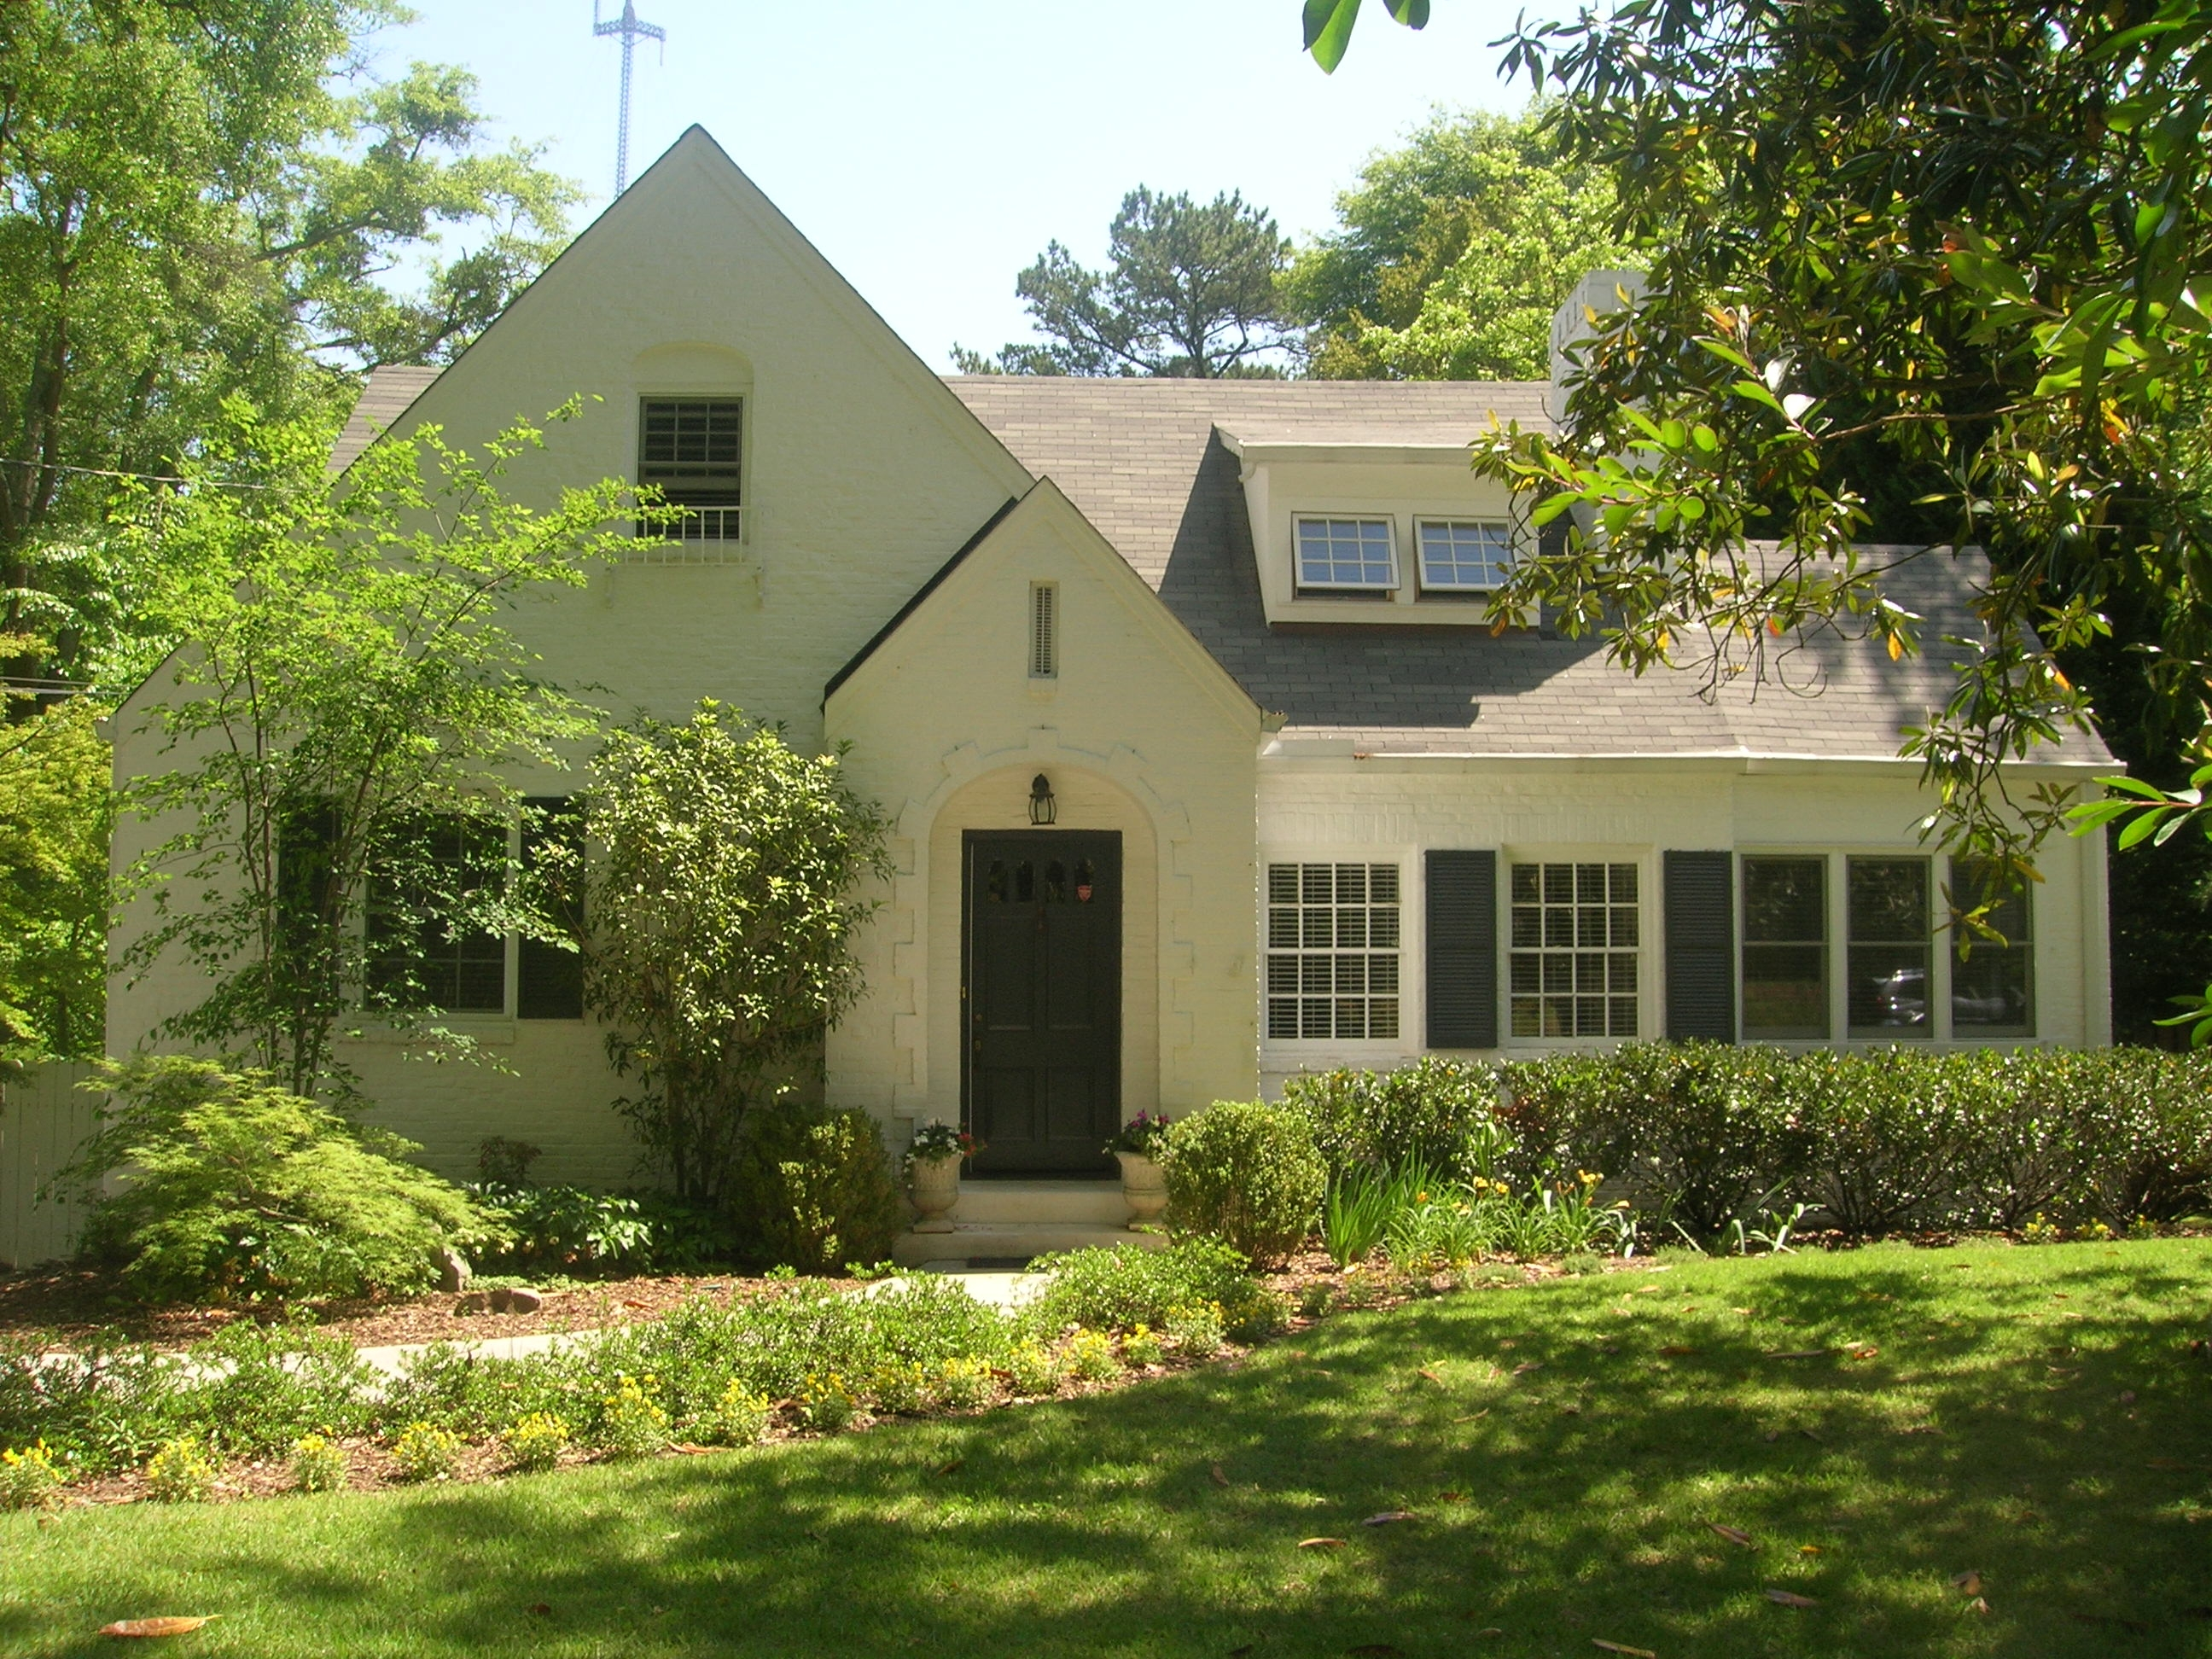 Featured home storybook charm in morningside carmen pope for Storybook homes prices